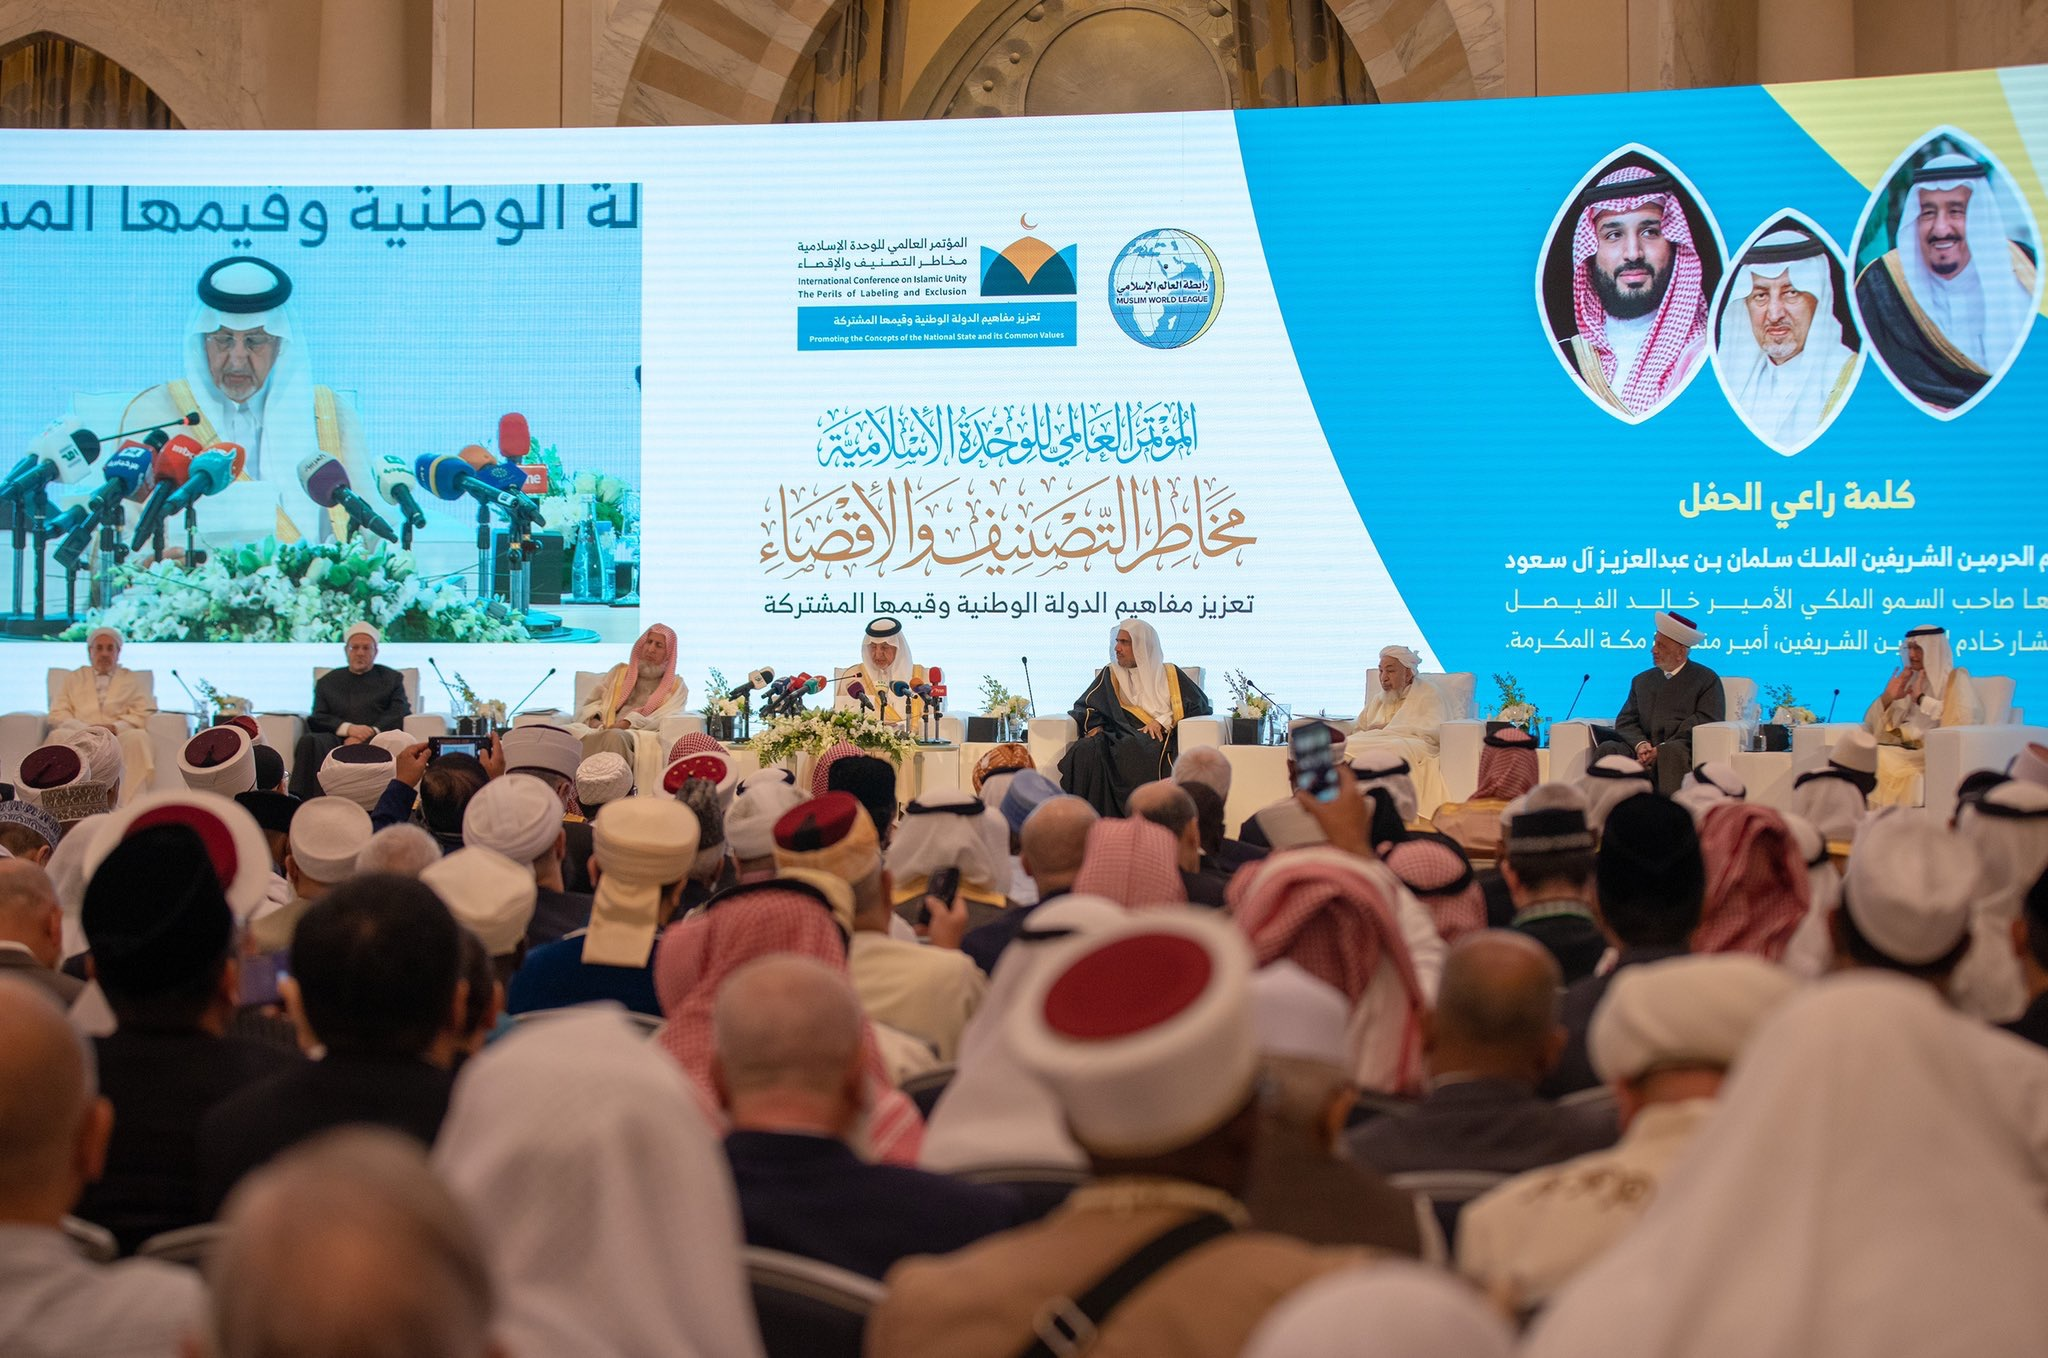 In the final communiqué of the Islamic Unity Conference (recently held in Makkah, where the Qibla of Muslims' is; the refuge of their hearts, & attended by 1200 scholars of 28 Islamic components): Muslims are proud of the pioneering role of KSA as the highest Islamic reference